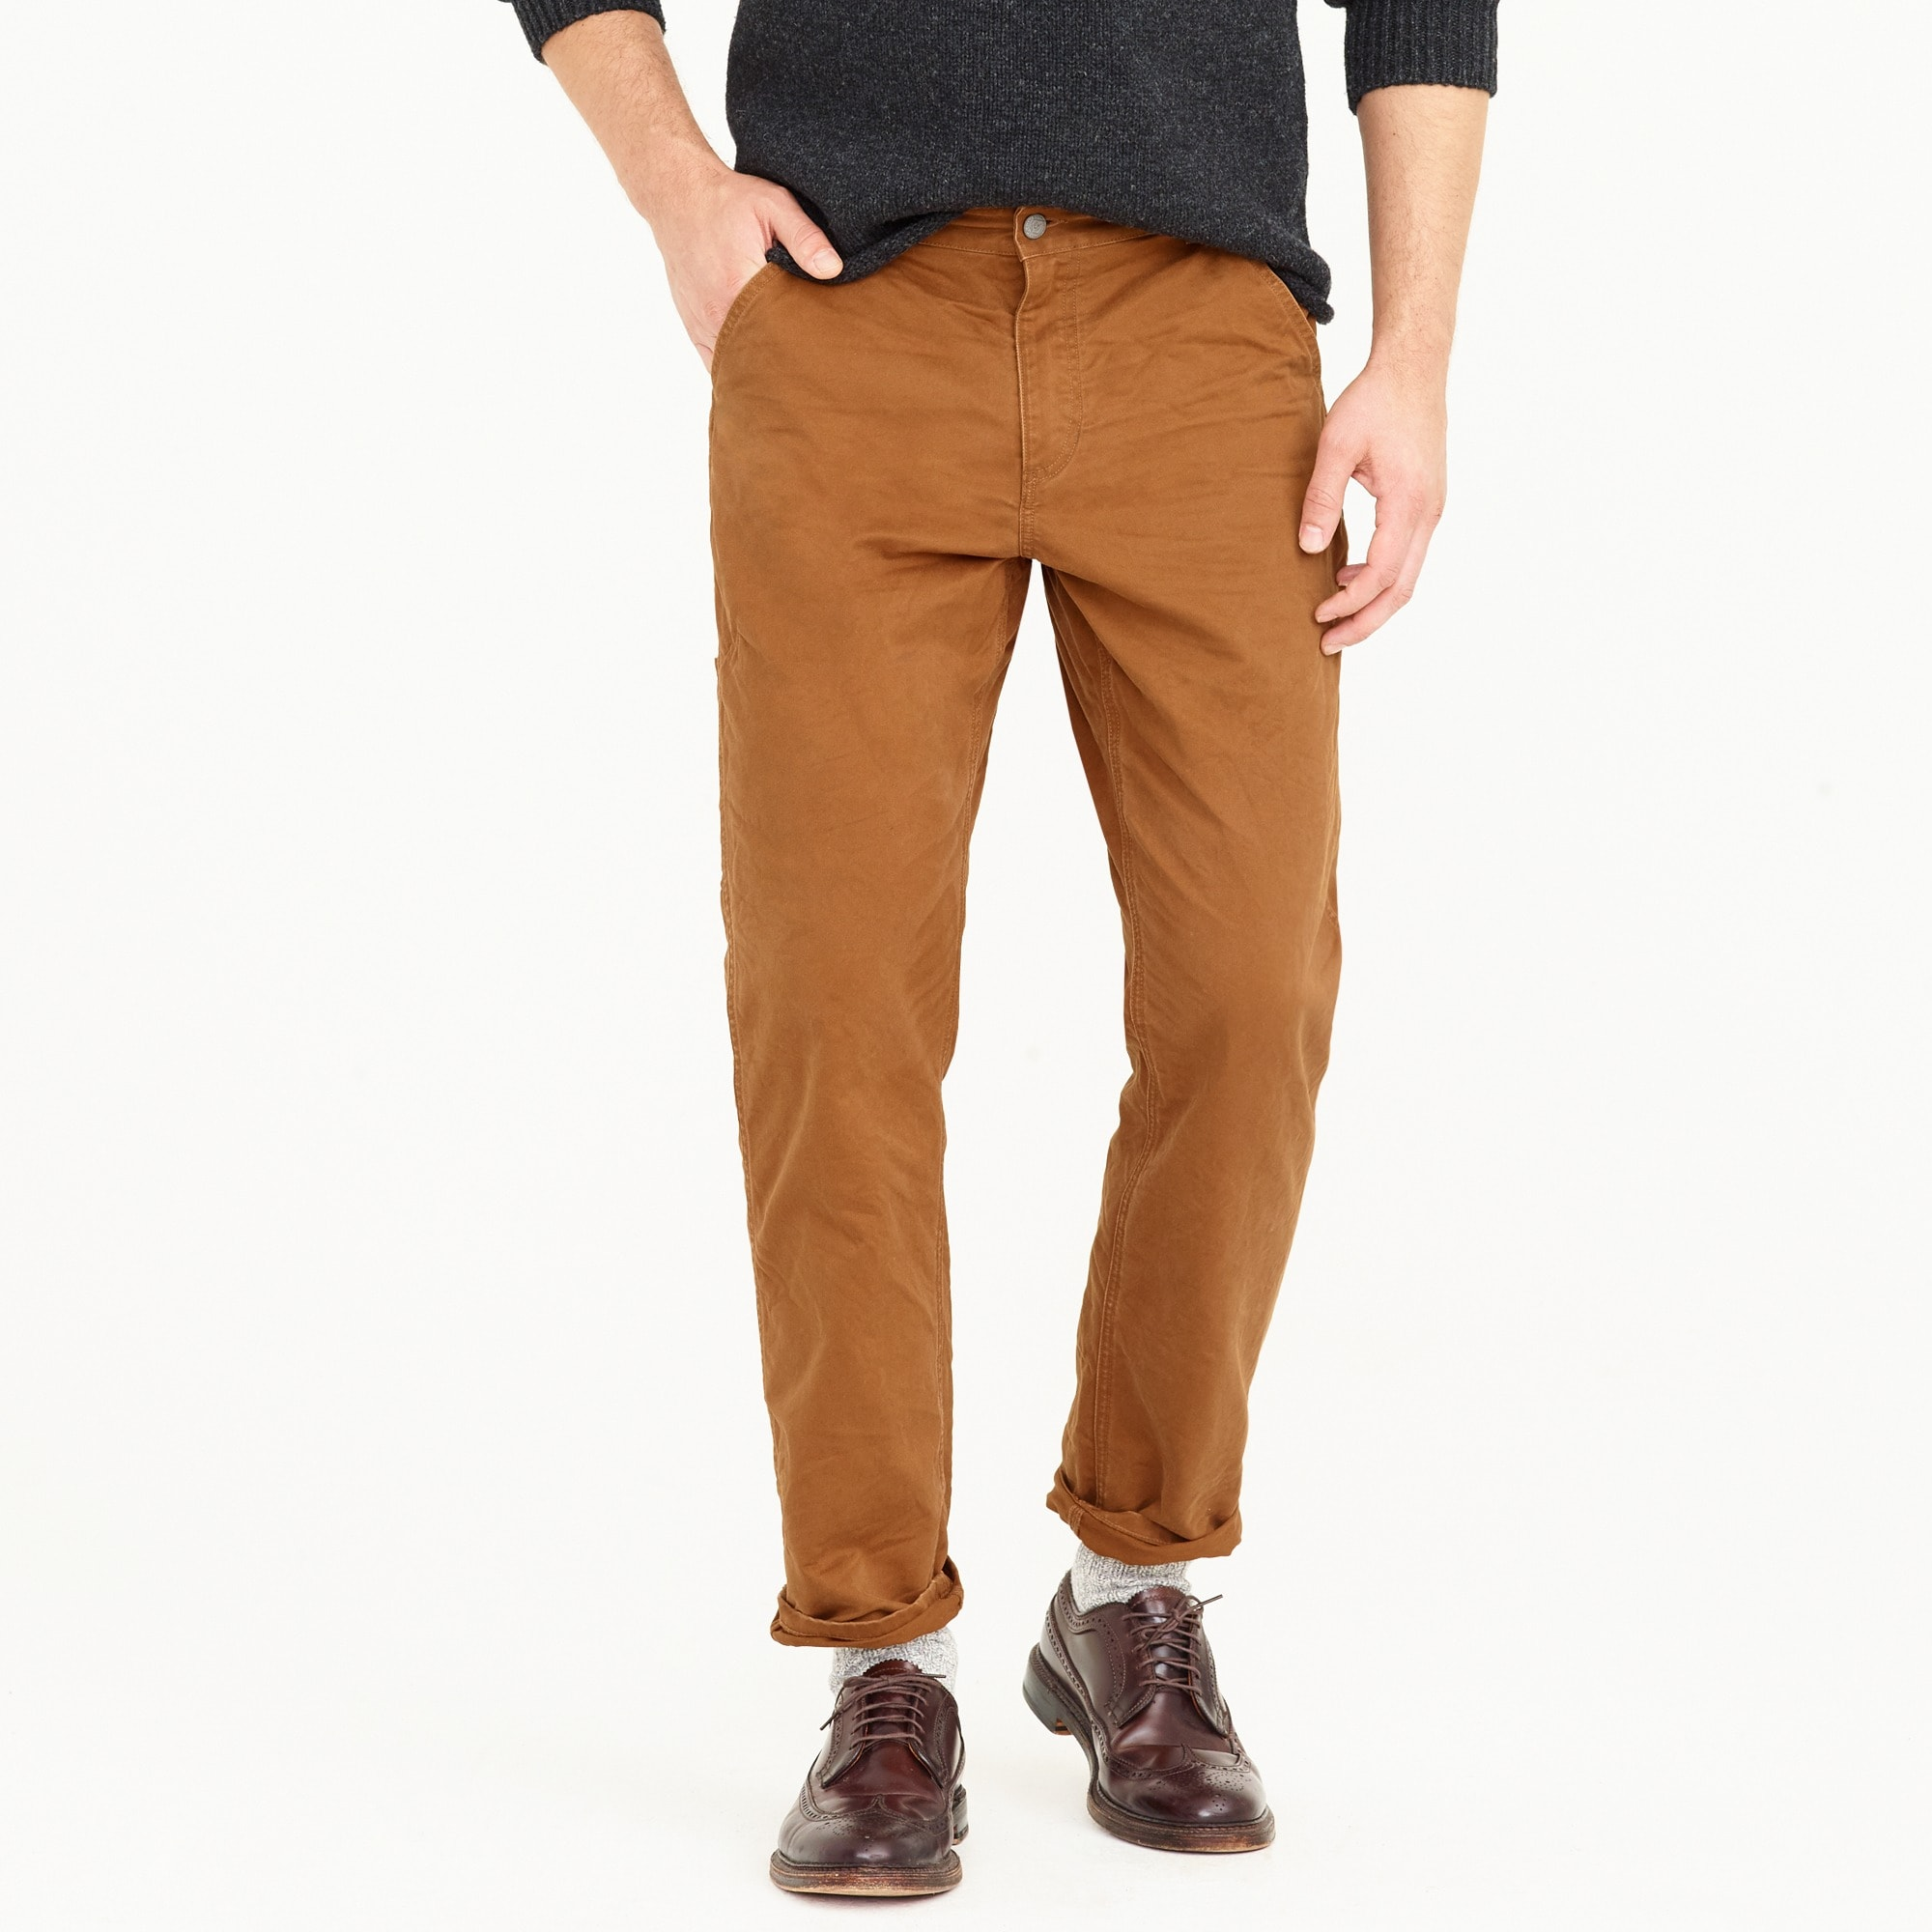 men's 1040 athletic-fit carpenter pant in broken-in chino